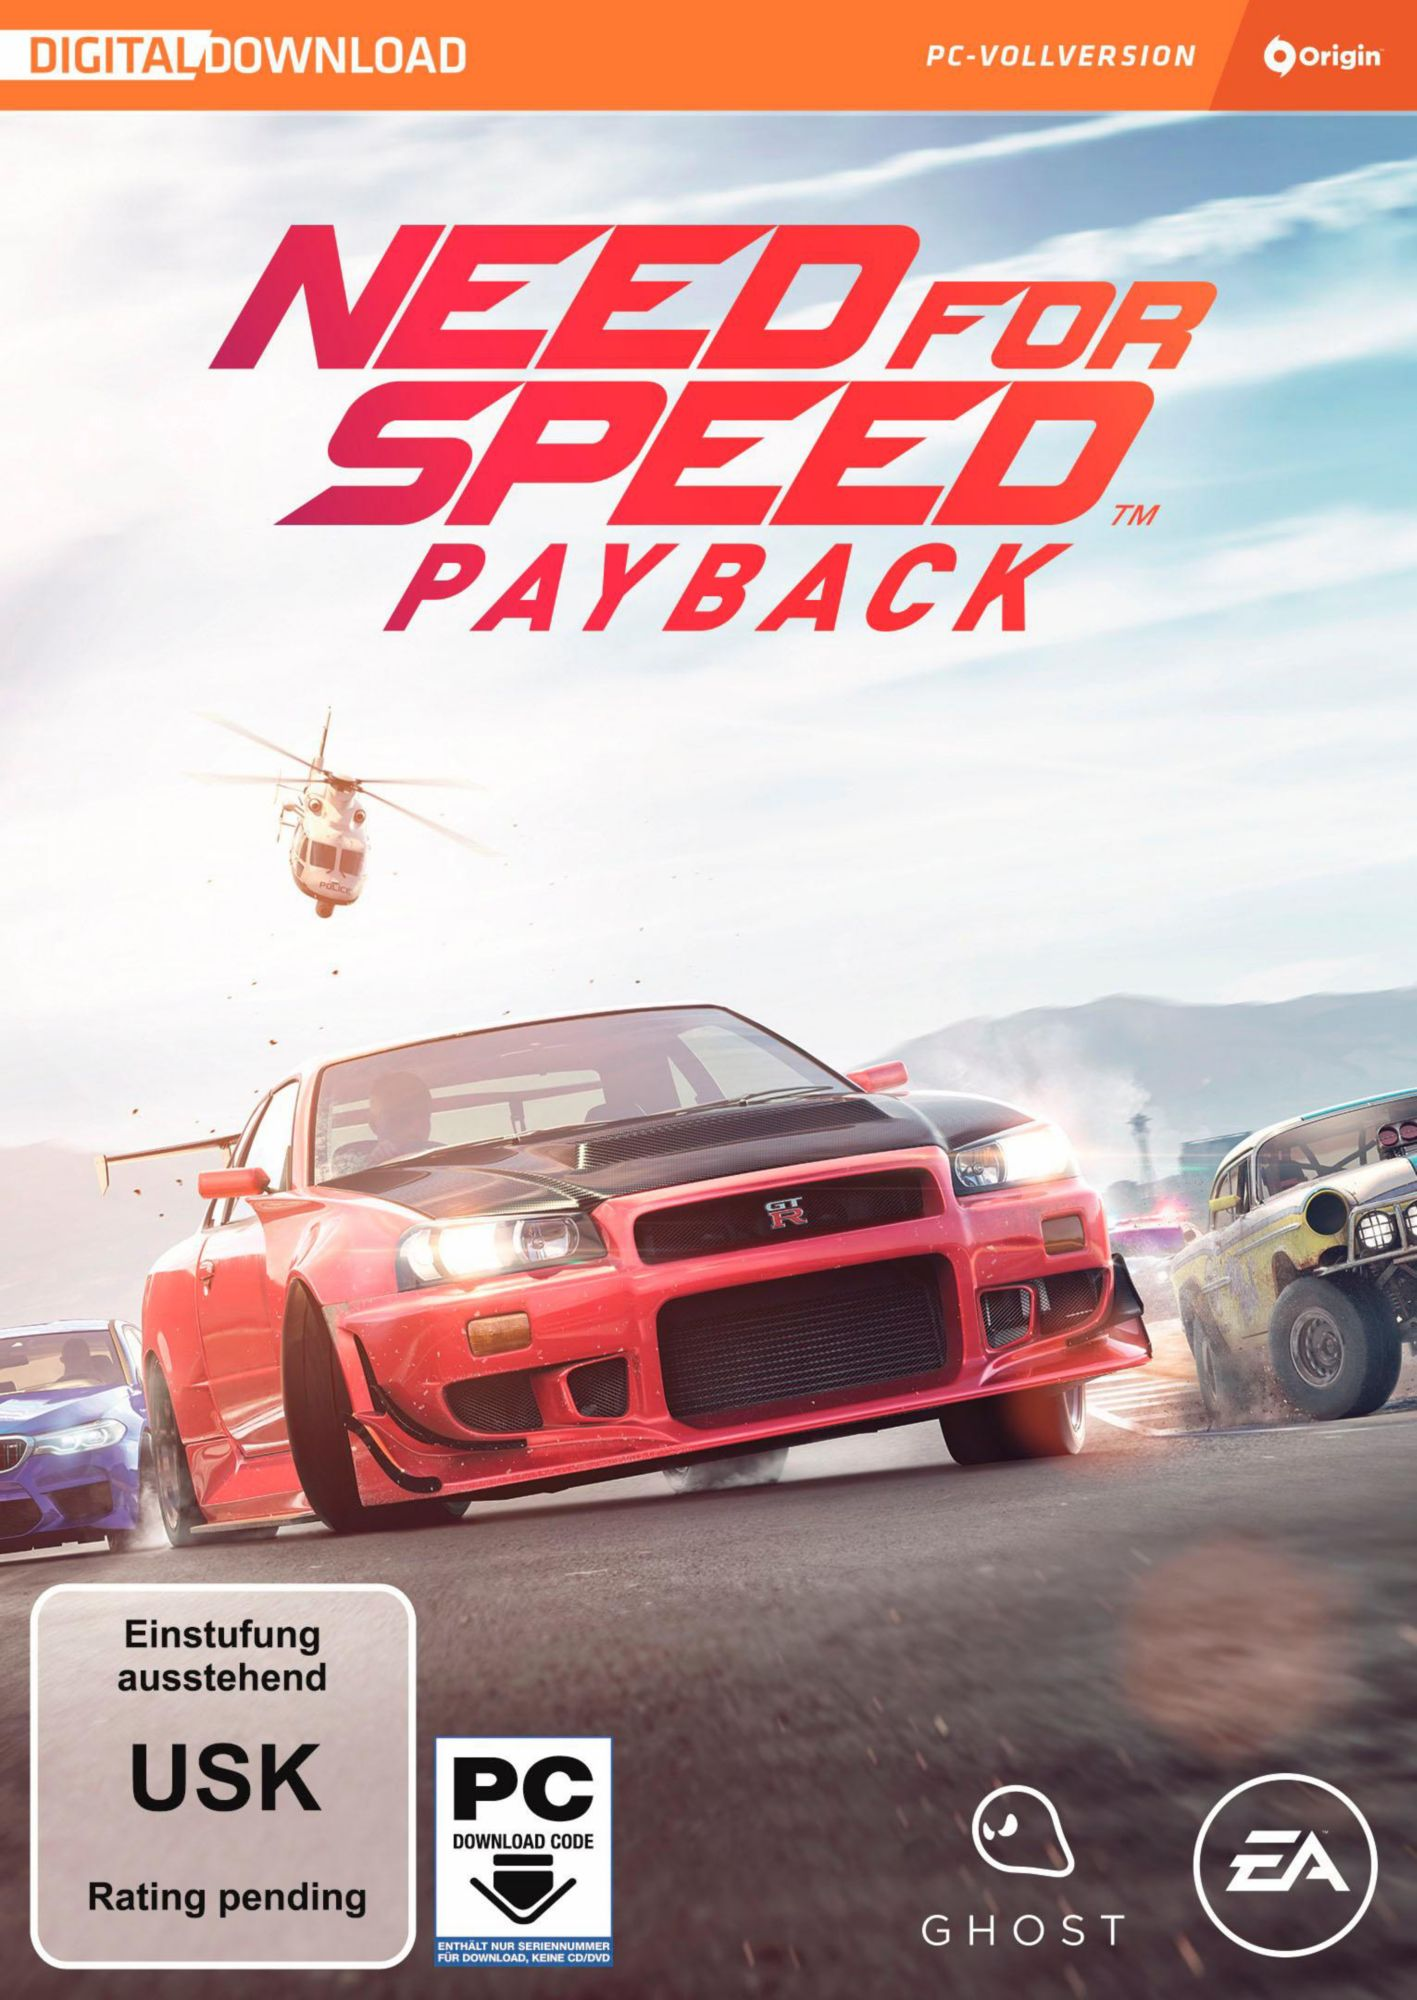 ELECTRONIC ARTS Need for Speed Payback, PC-Spiel